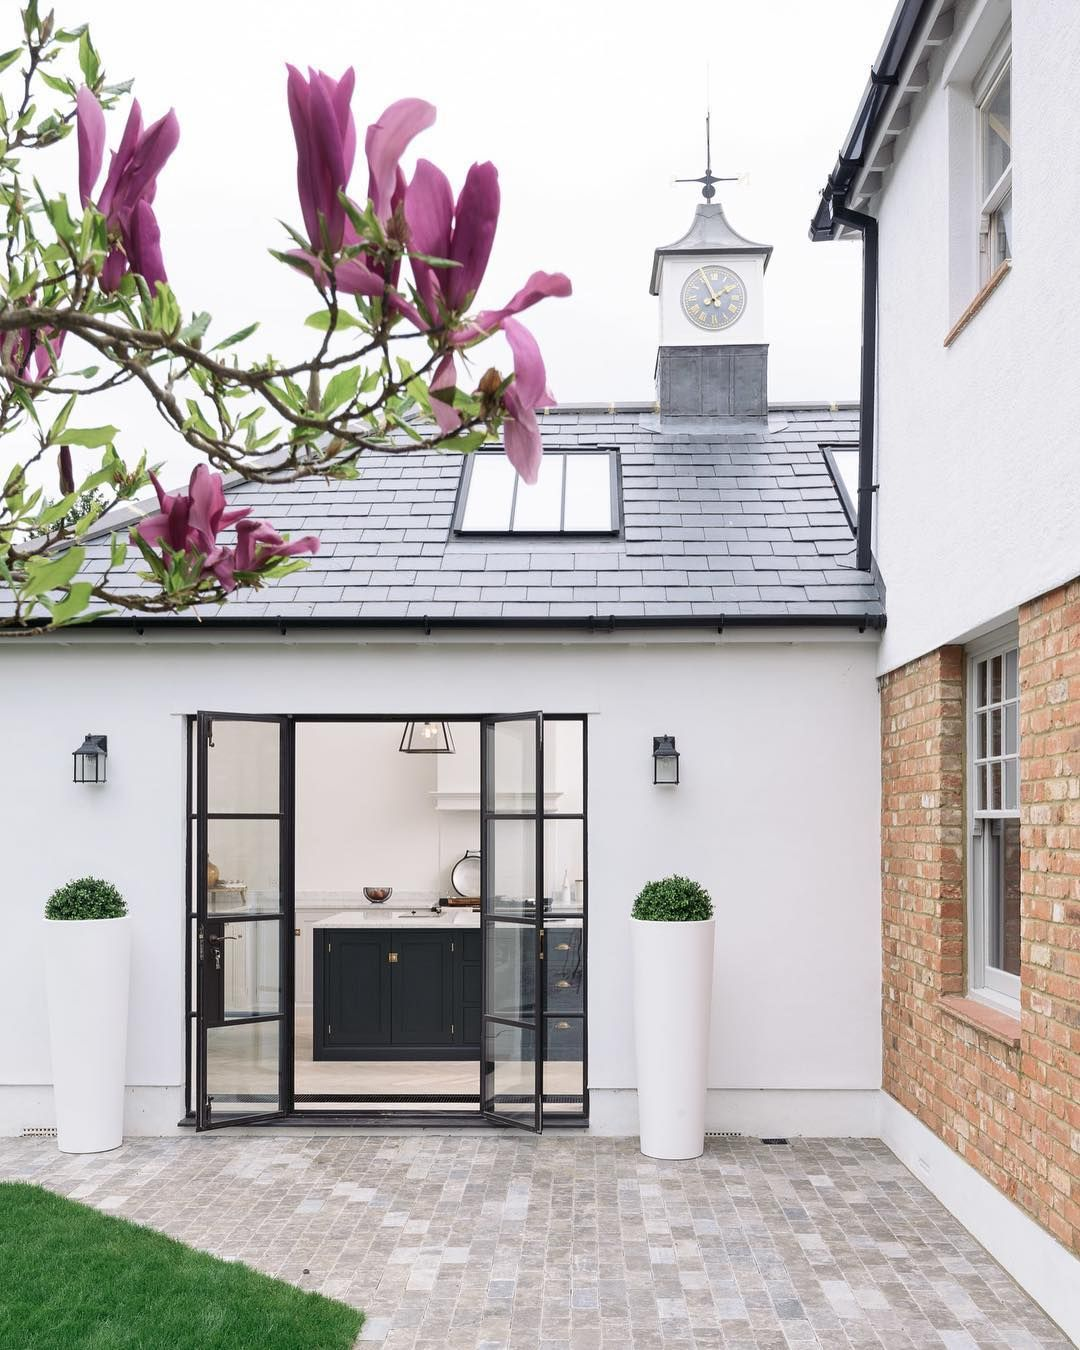 You Ll Spot These Crittall Style Windows And Doors In A Lot Of Our Projects Beautifu Minimalist Kitchen Design Minimalist Home Decor Modern Farmhouse Kitchens